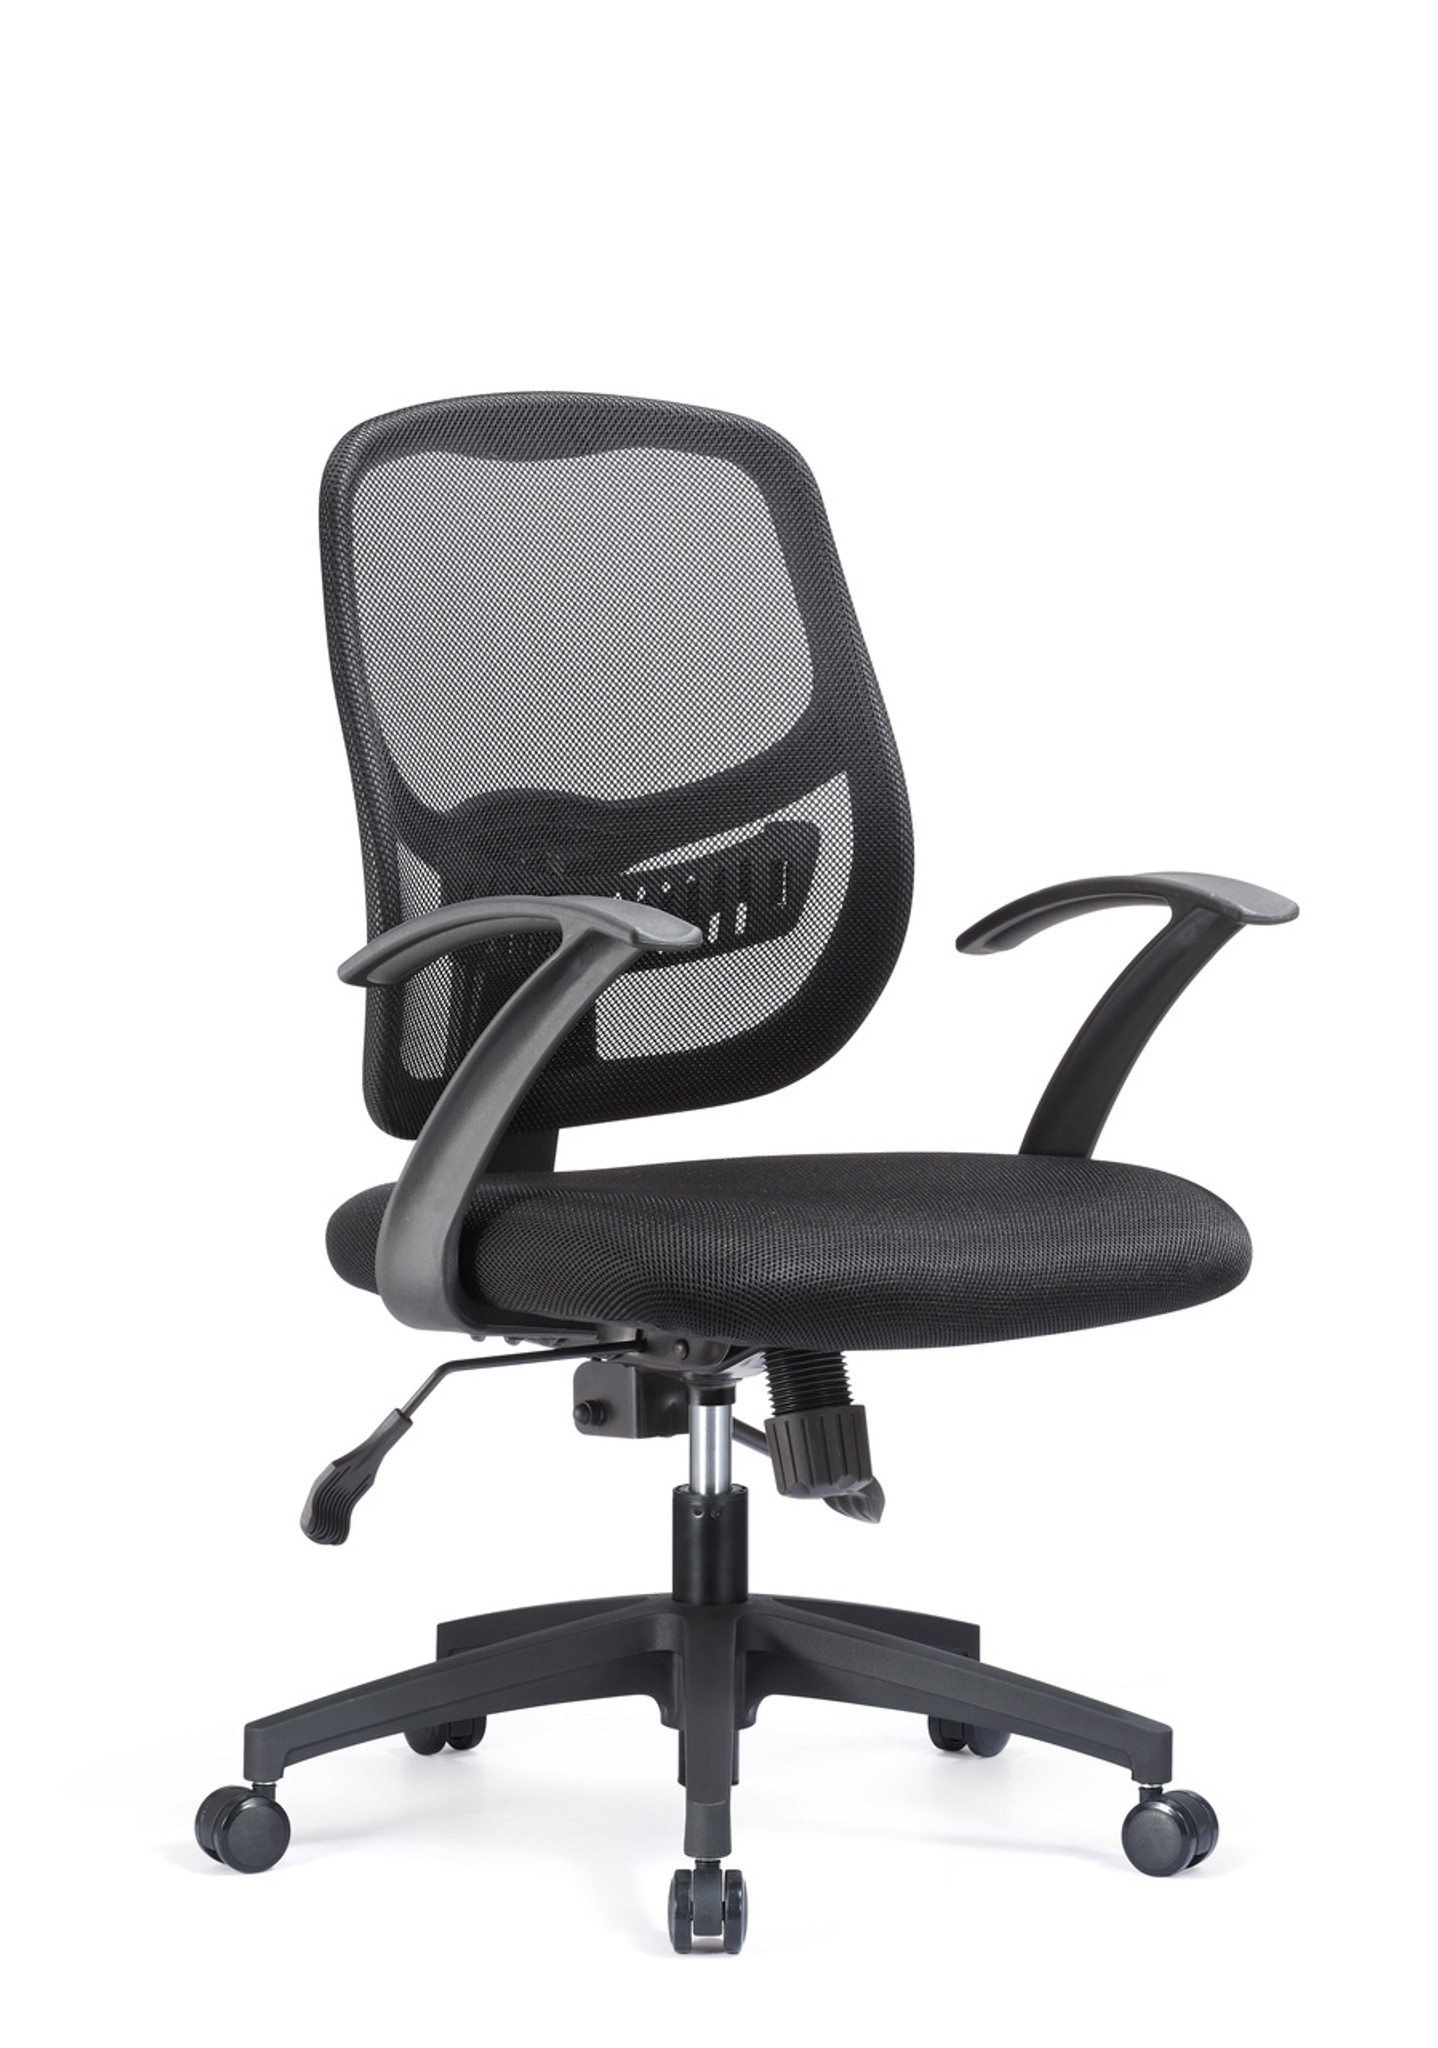 office chair mesh at end of bed name modern design adjustable height orlando furniture